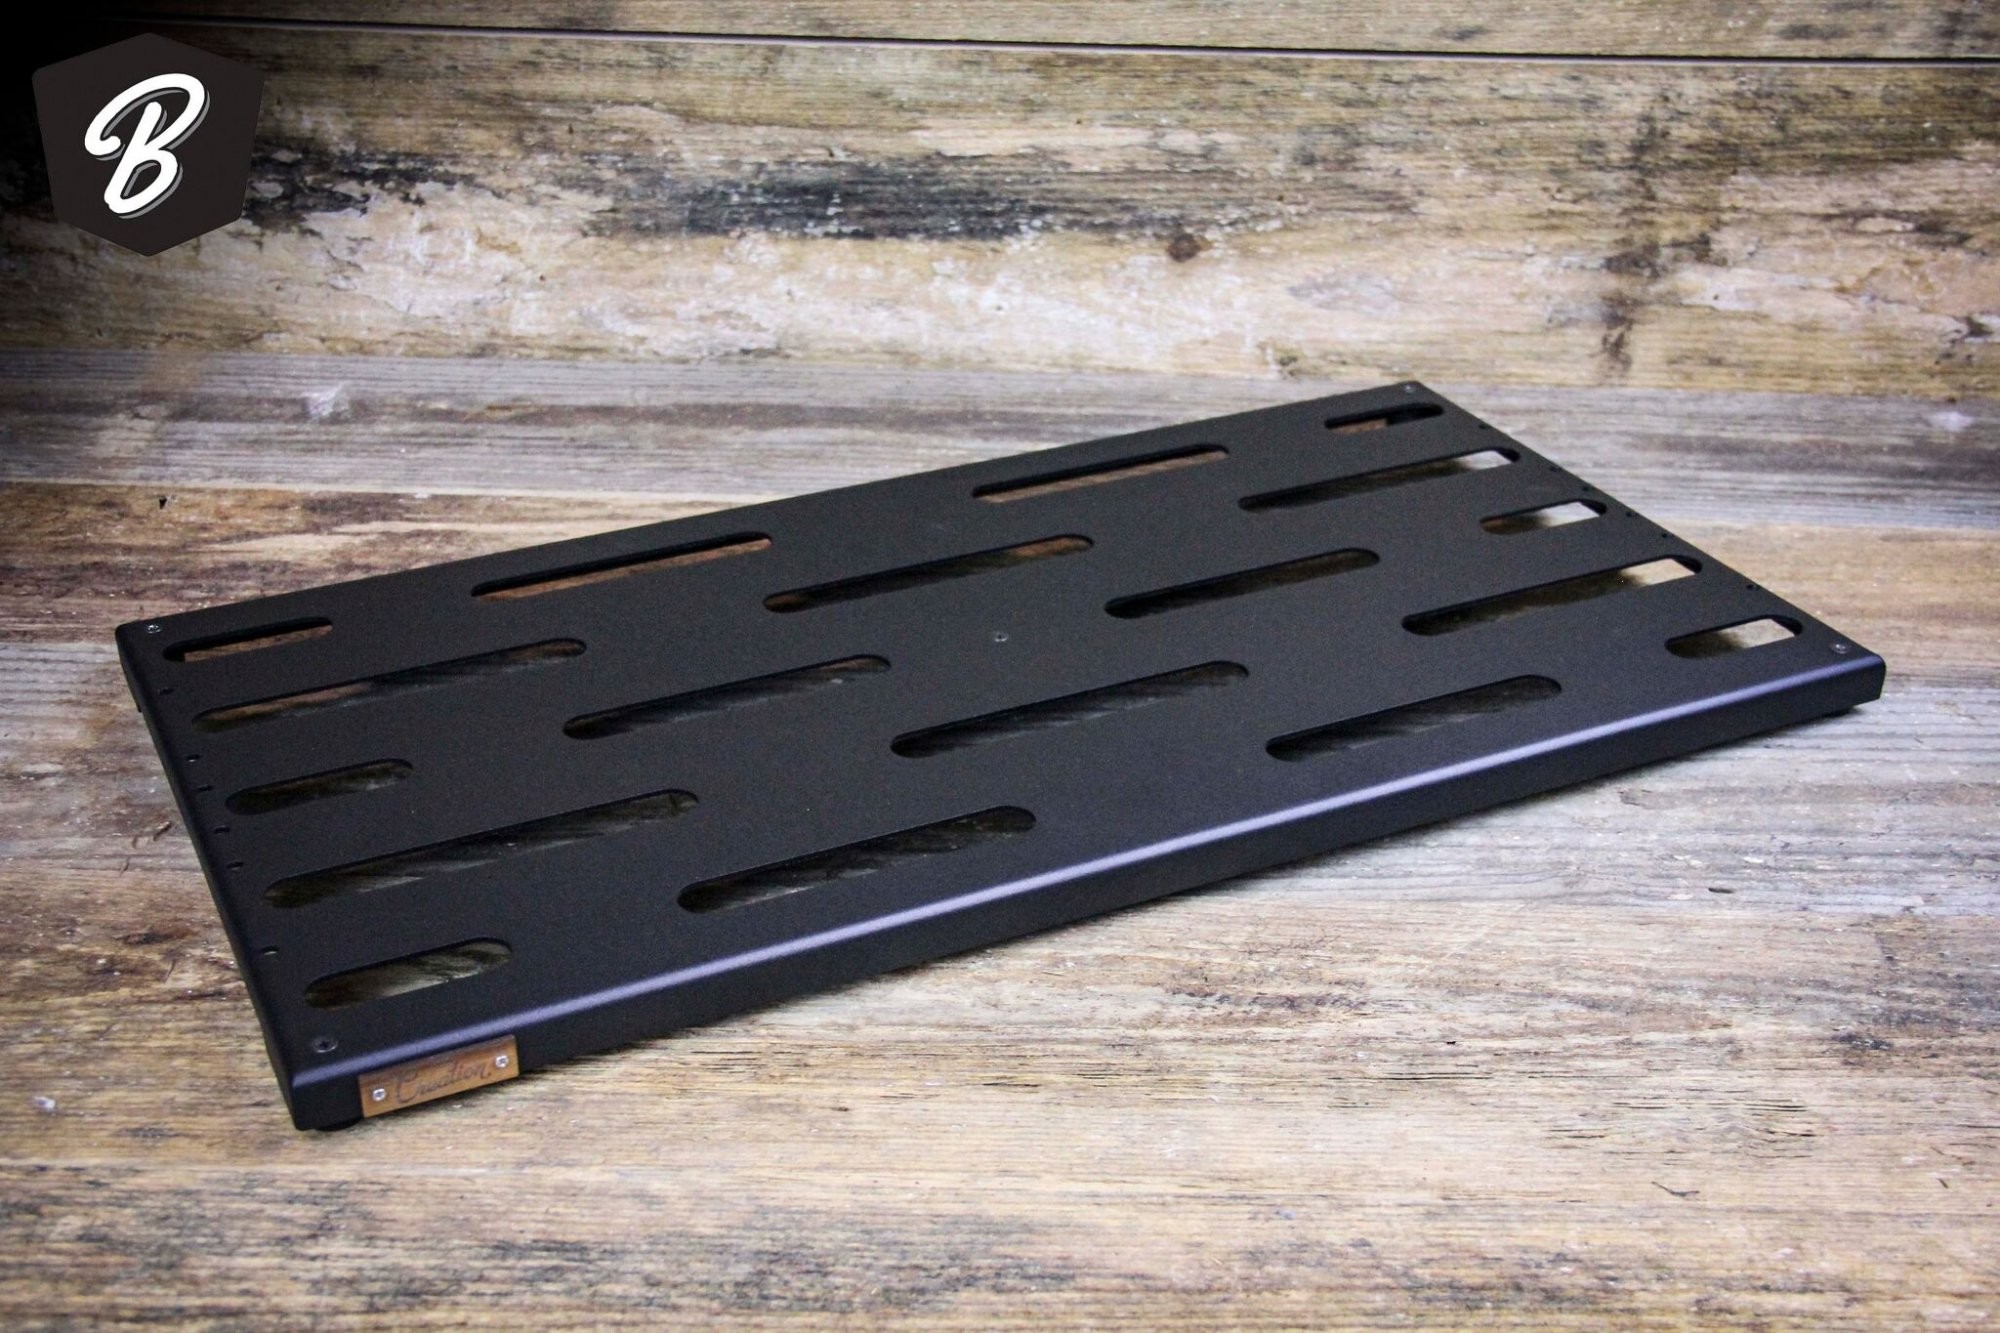 Creation Music Company 24x12.5 Aero Series Pedal Board in Gunmetal Grey w/Soft Case